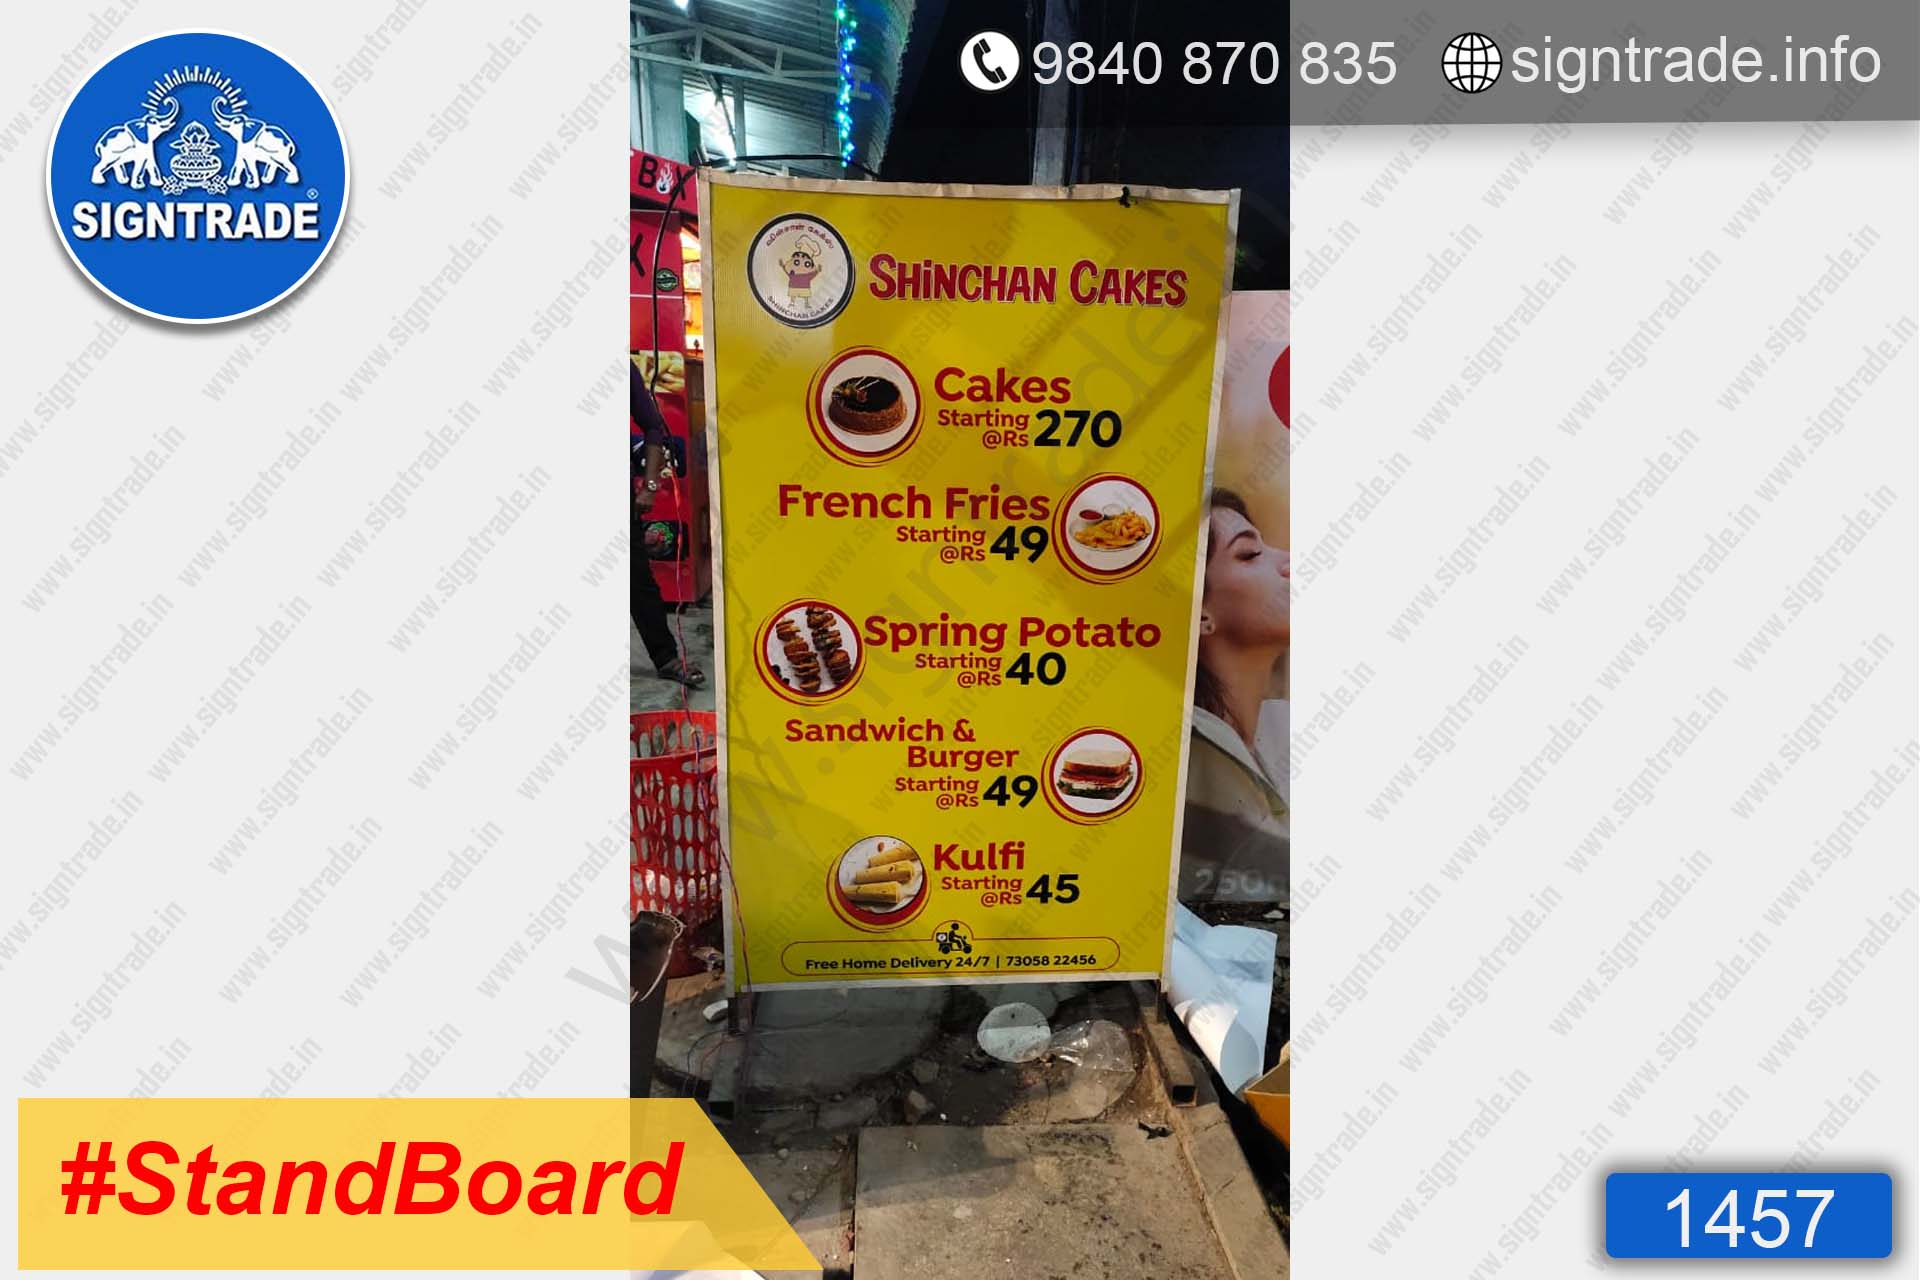 Shinchan Cakes stand board